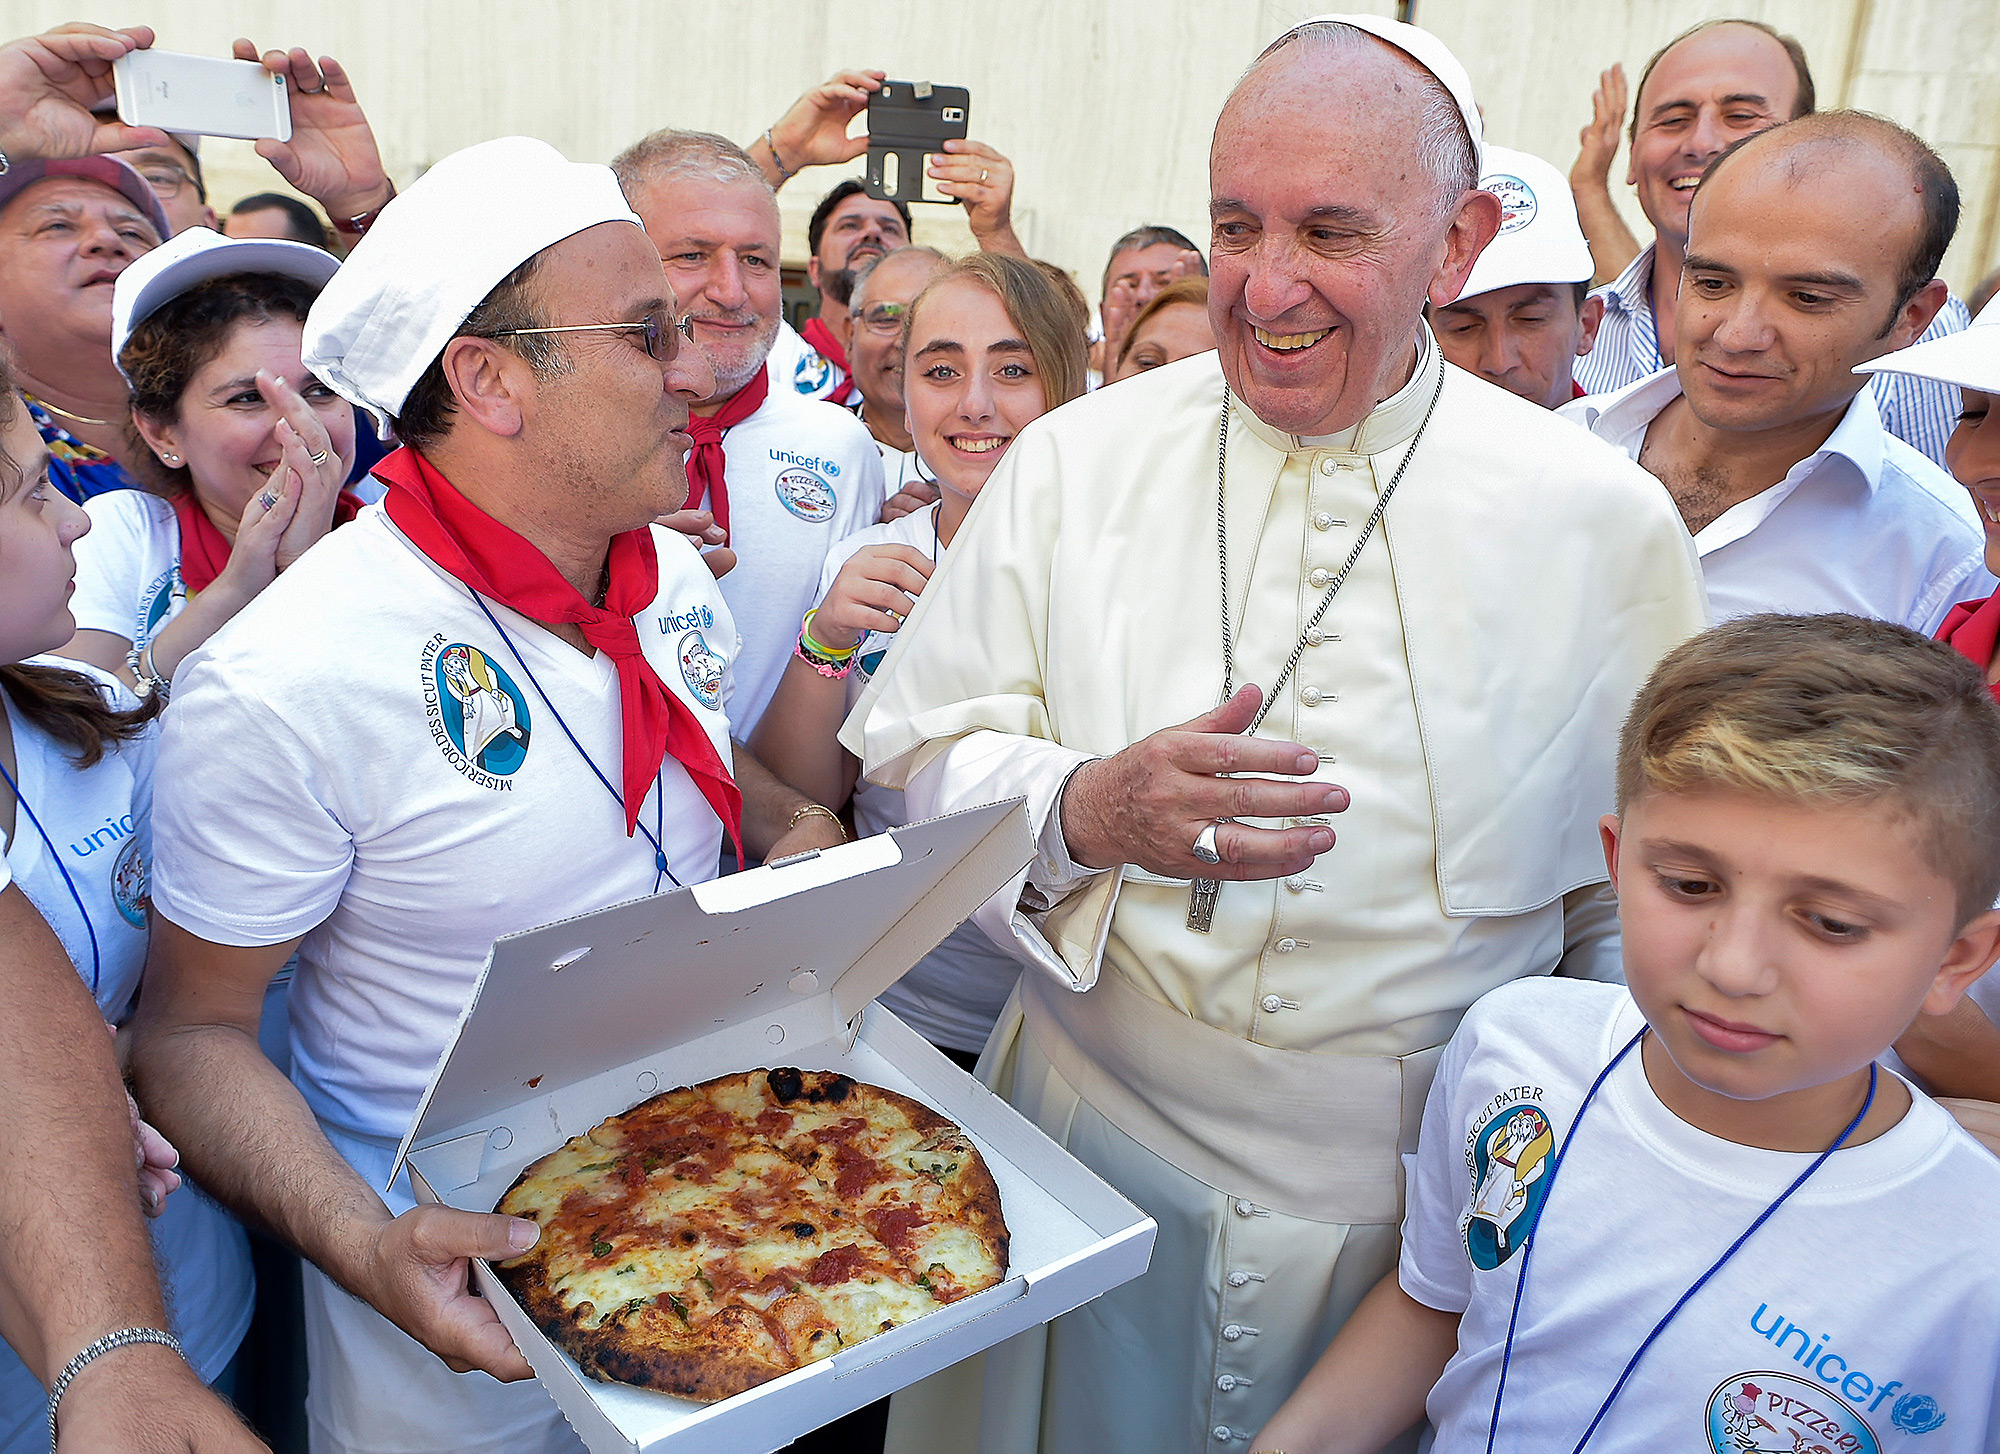 Pope Francis Throws A Pizza Party Feeding 1500 Homeless People At The Vatican